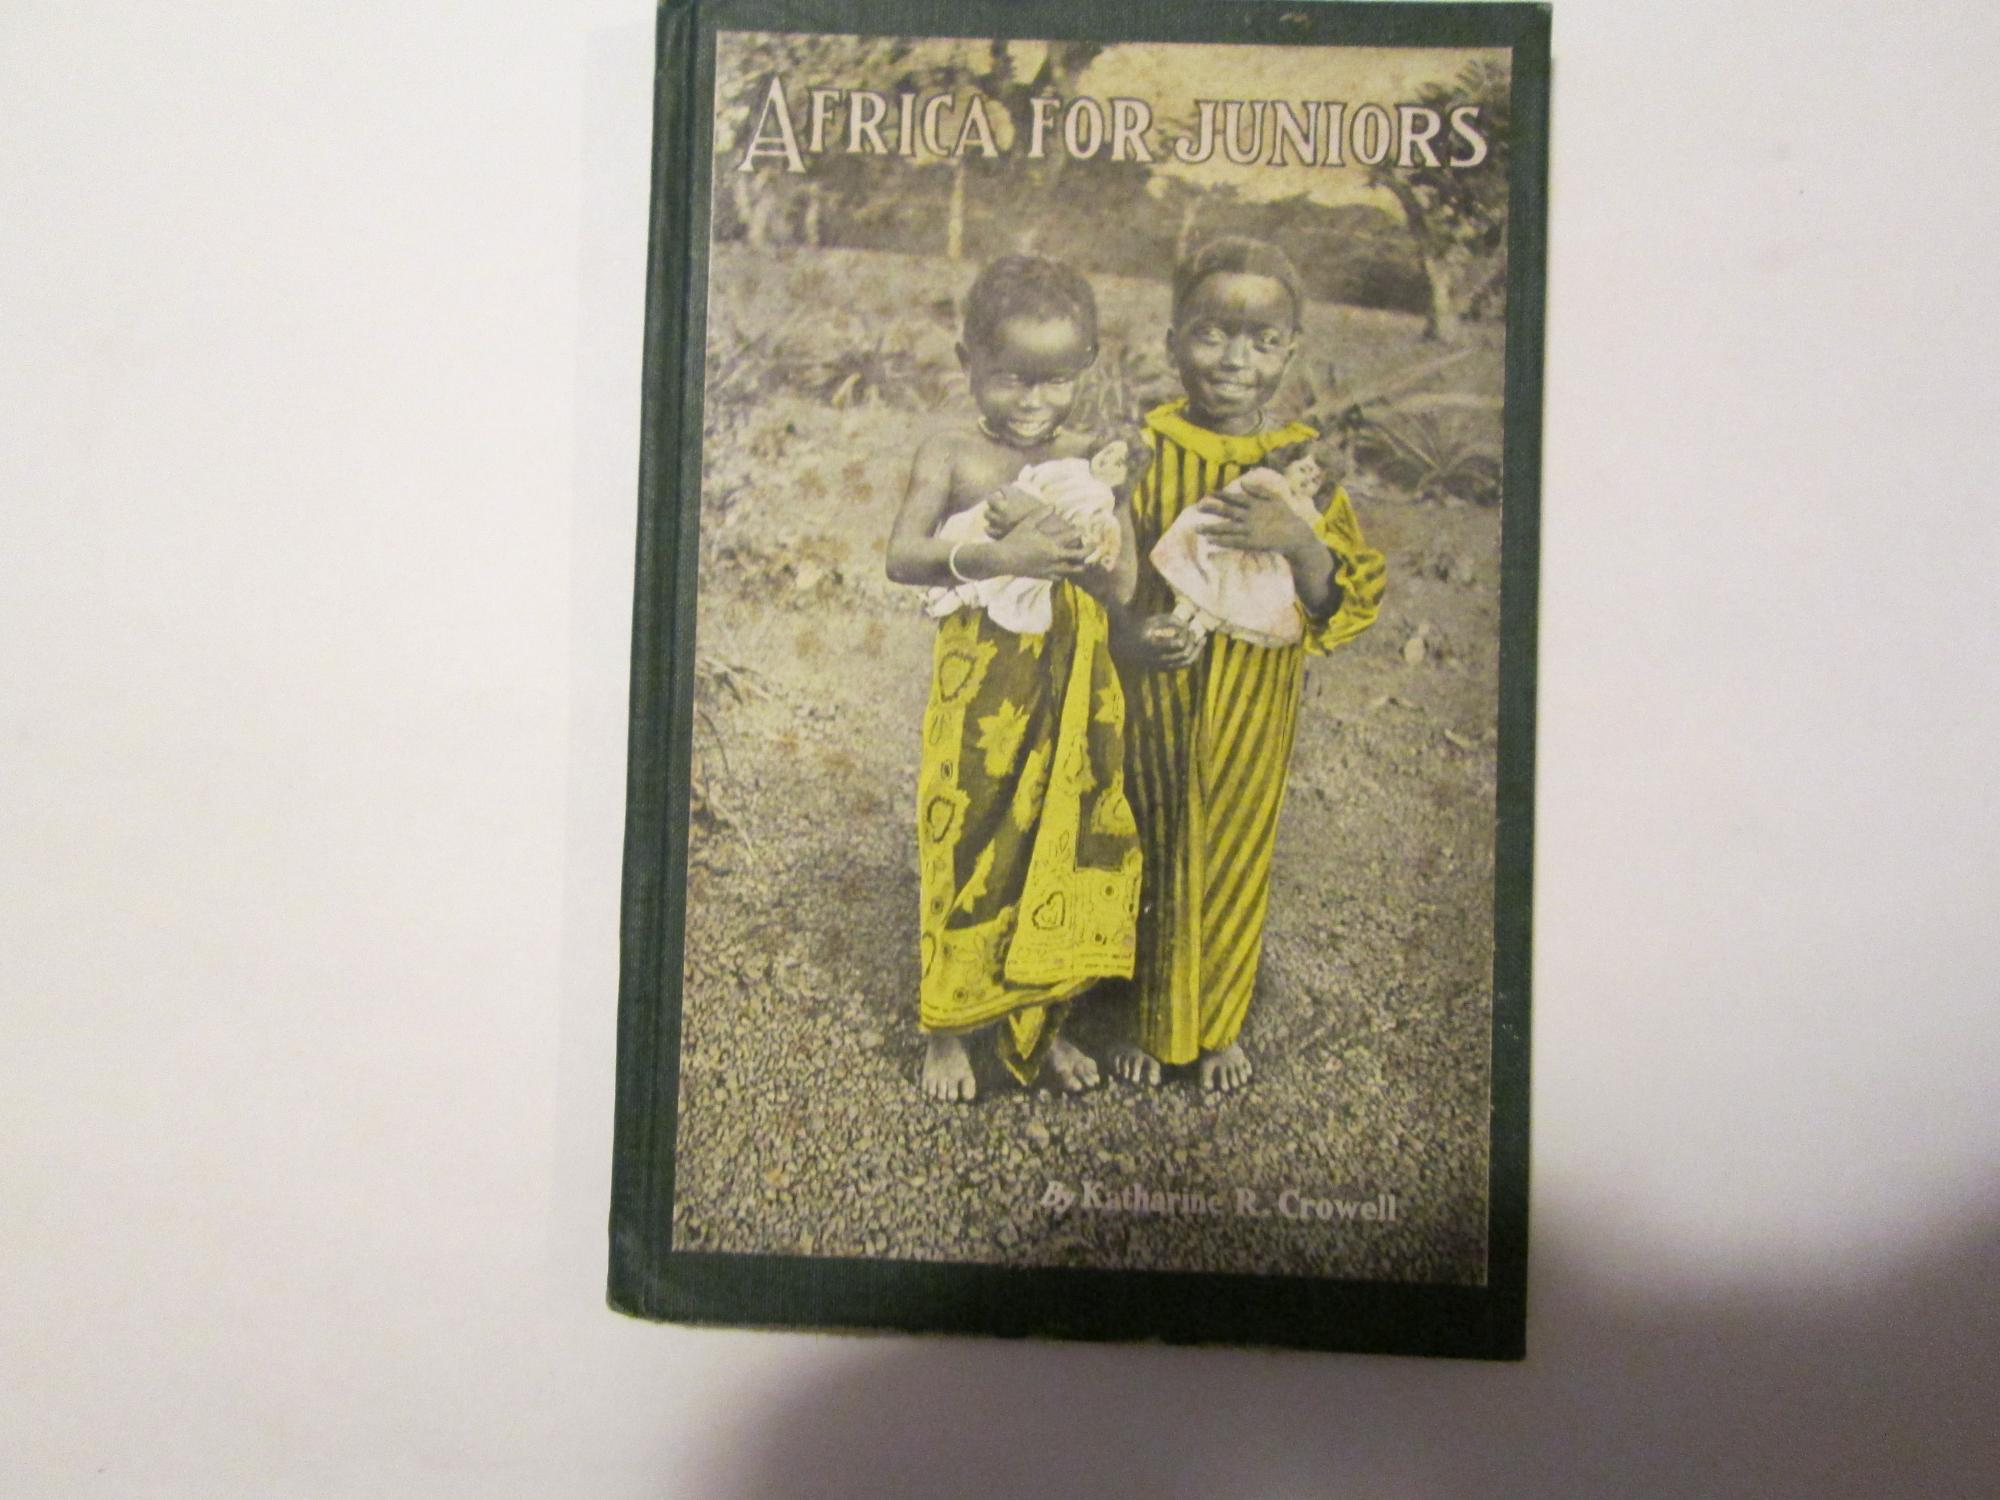 AFRICA FOR JUNIORS Crowell, Katharine 86p, illustrated w photos of African life. Charming paste-on cover photo of two little Black girls in African dress, each holding a white doll. Rare.